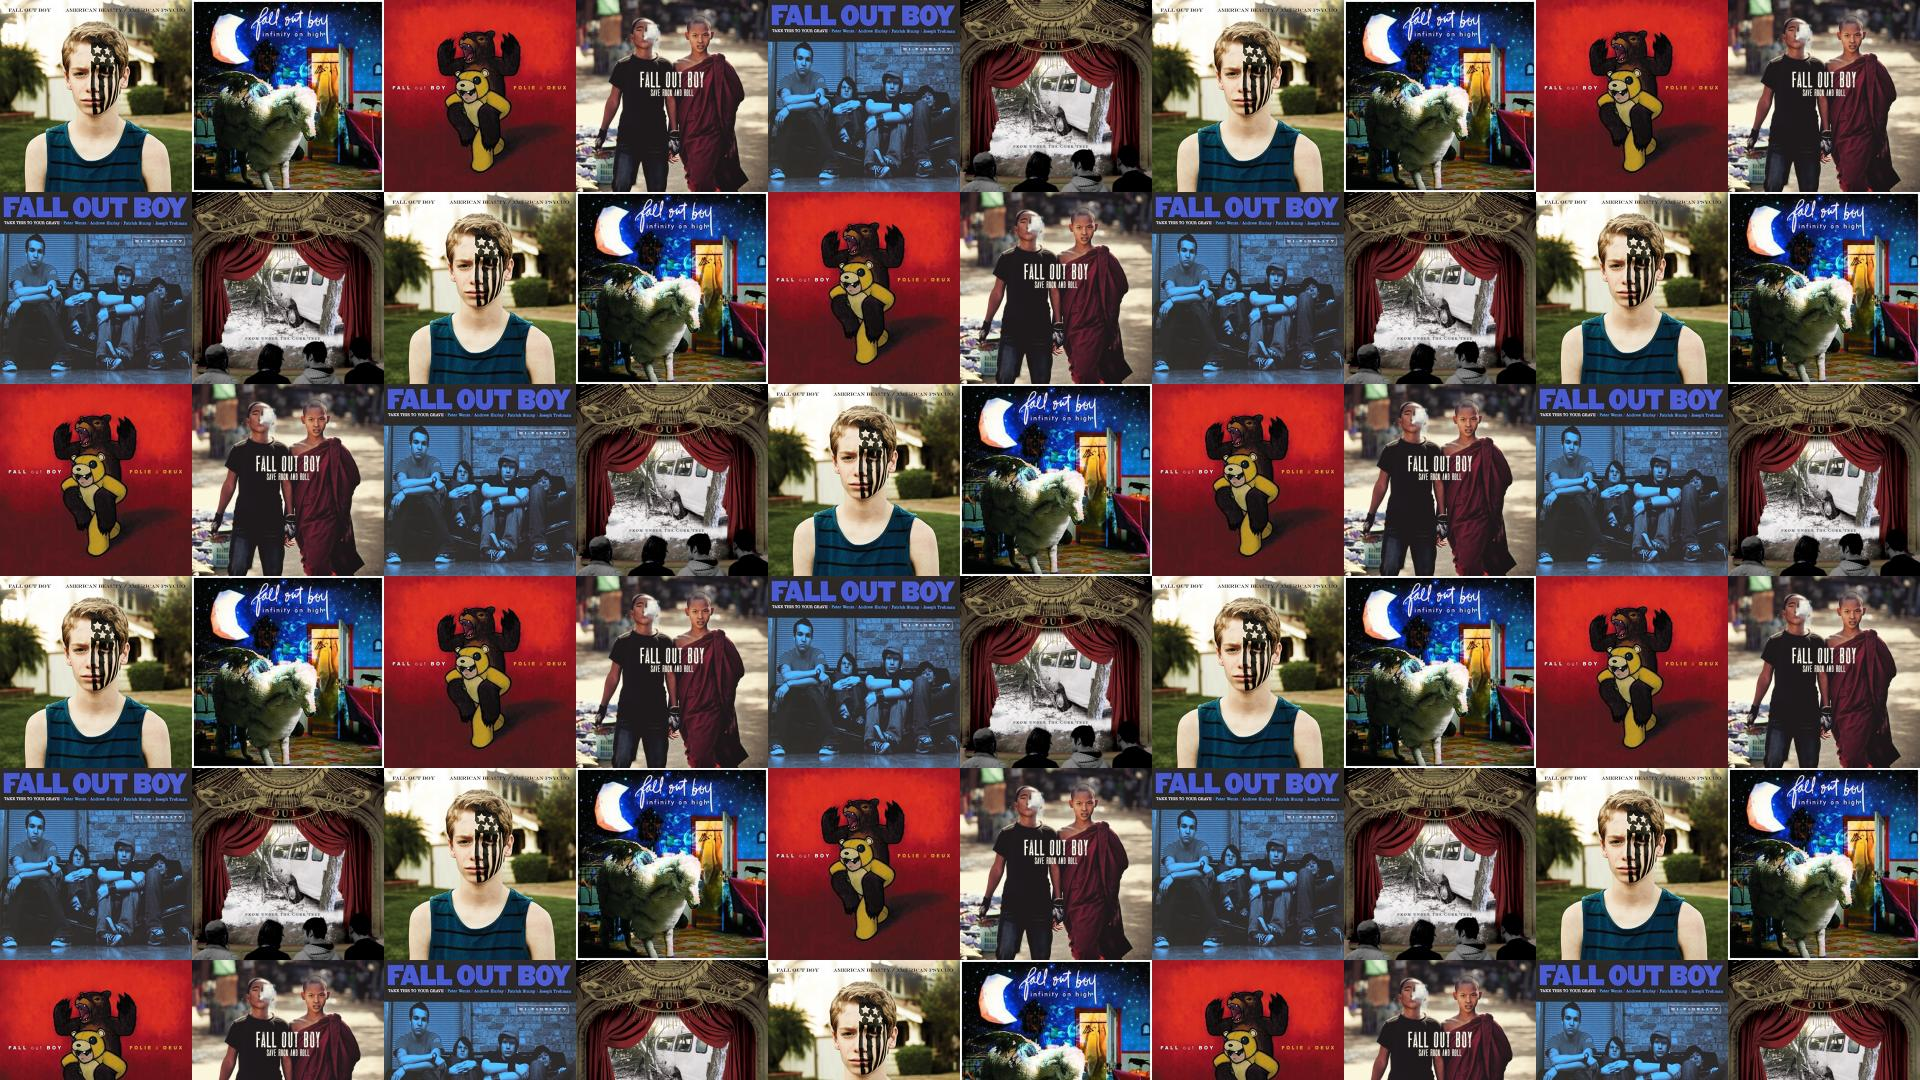 Fall Out Boy Infinity On High Folie Wallpaper « Tiled ...